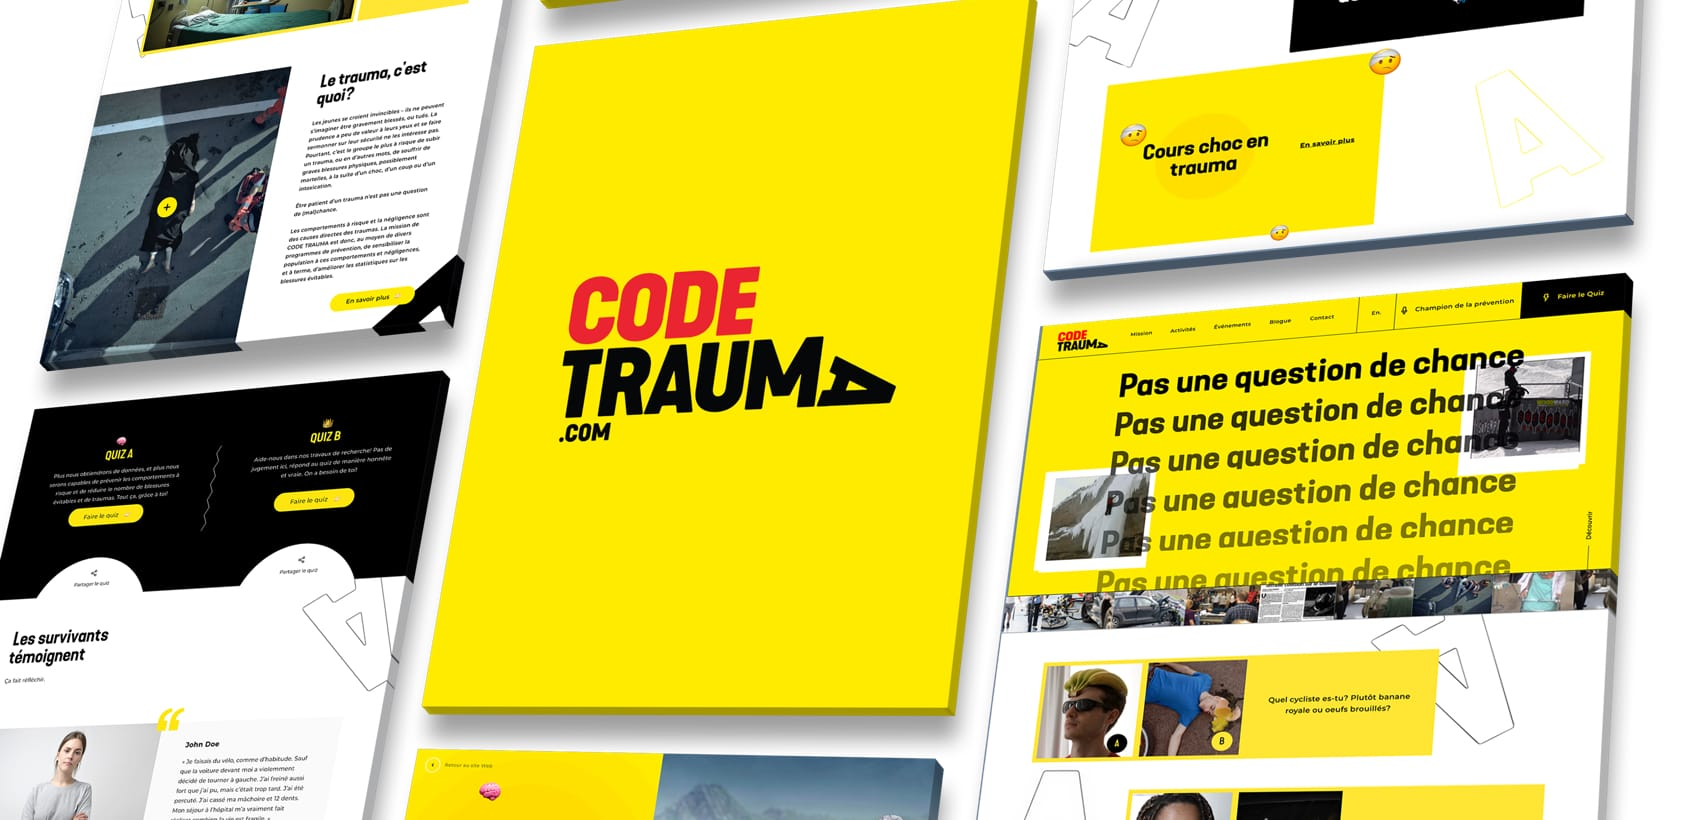 A successful challenge for Code Trauma's website: making a mark, attracting young audiences and educating them on risky behaviours!